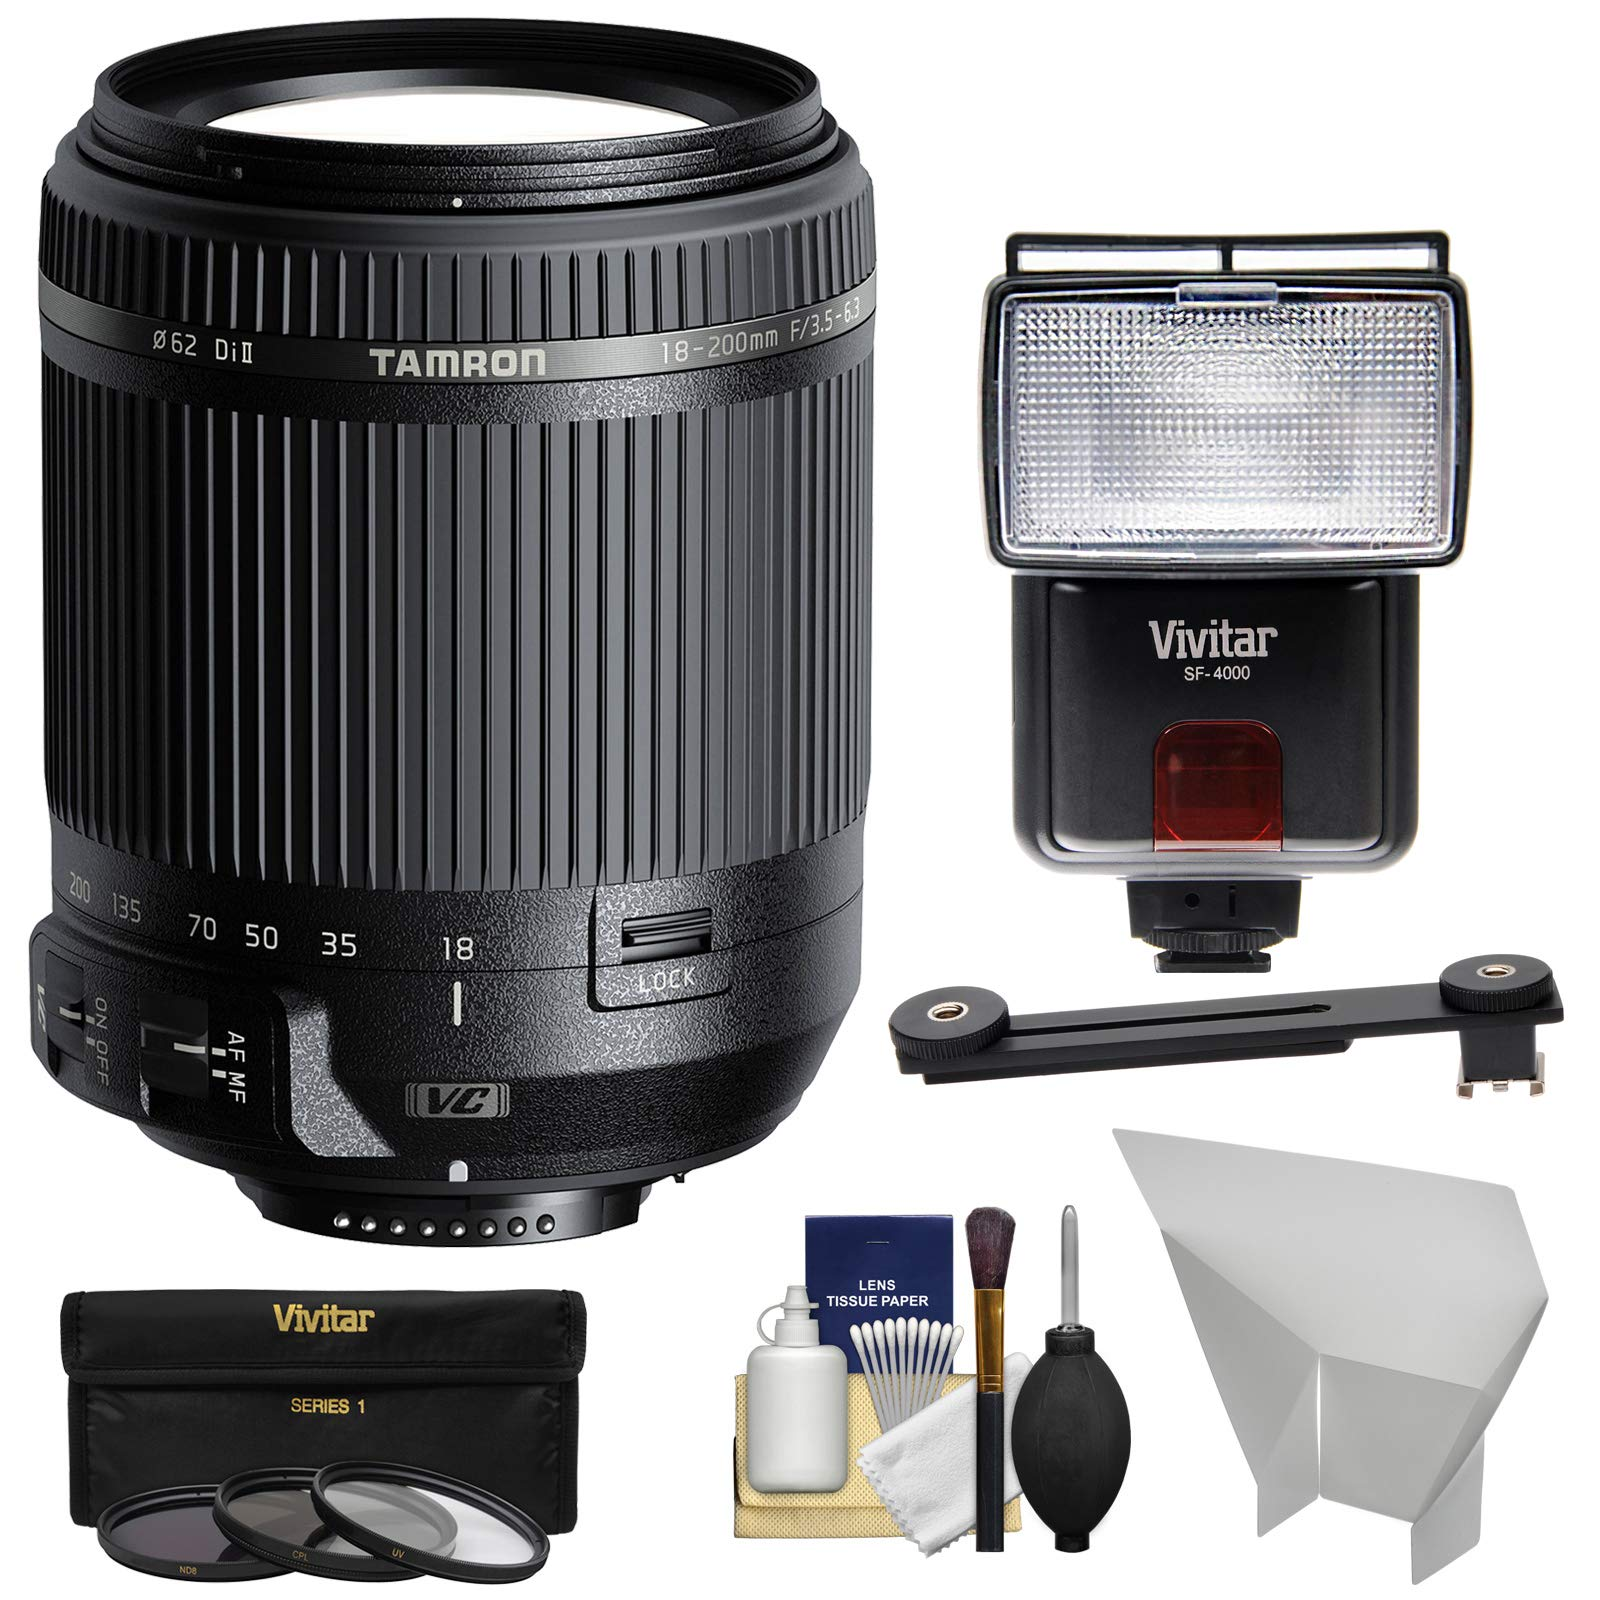 Tamron 18-200mm f/3.5-6.3 Di II VC Zoom Lens with 3 Filters + Flash & LED Video Light + Diffuser + Reflector + Kit for Nikon DSLR Cameras